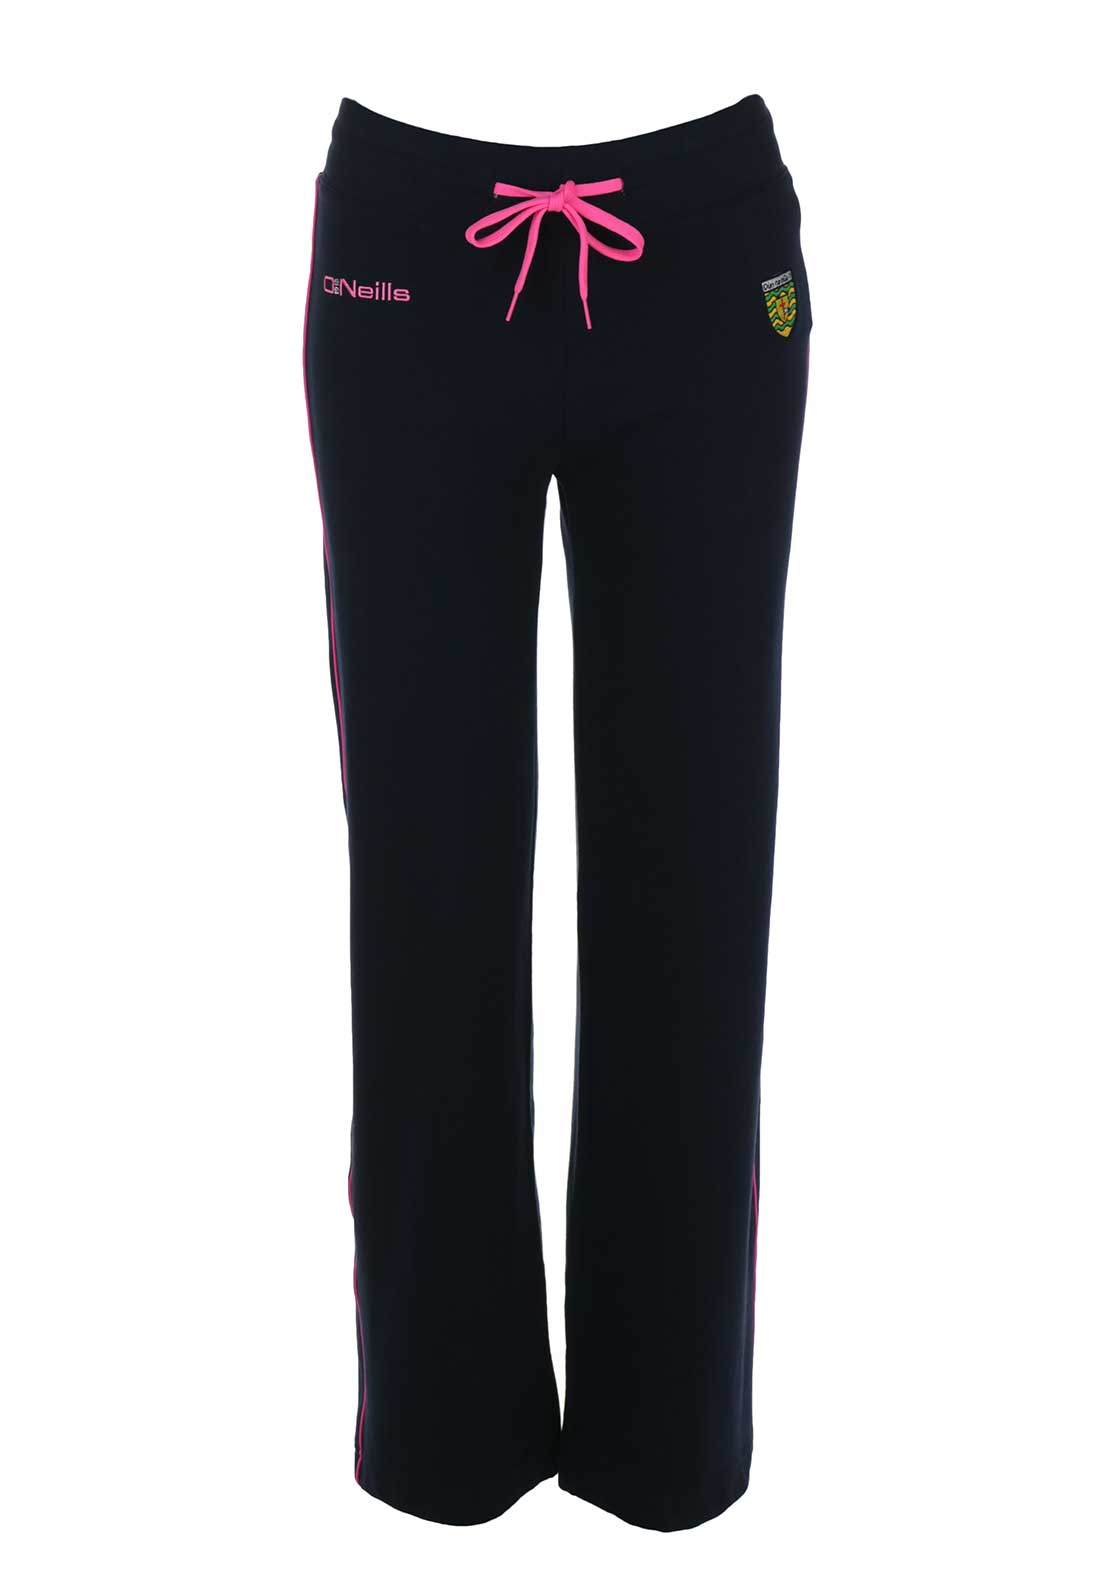 O'Neills Donegal GAA Womens Parnell Jersey Bottoms, Navy